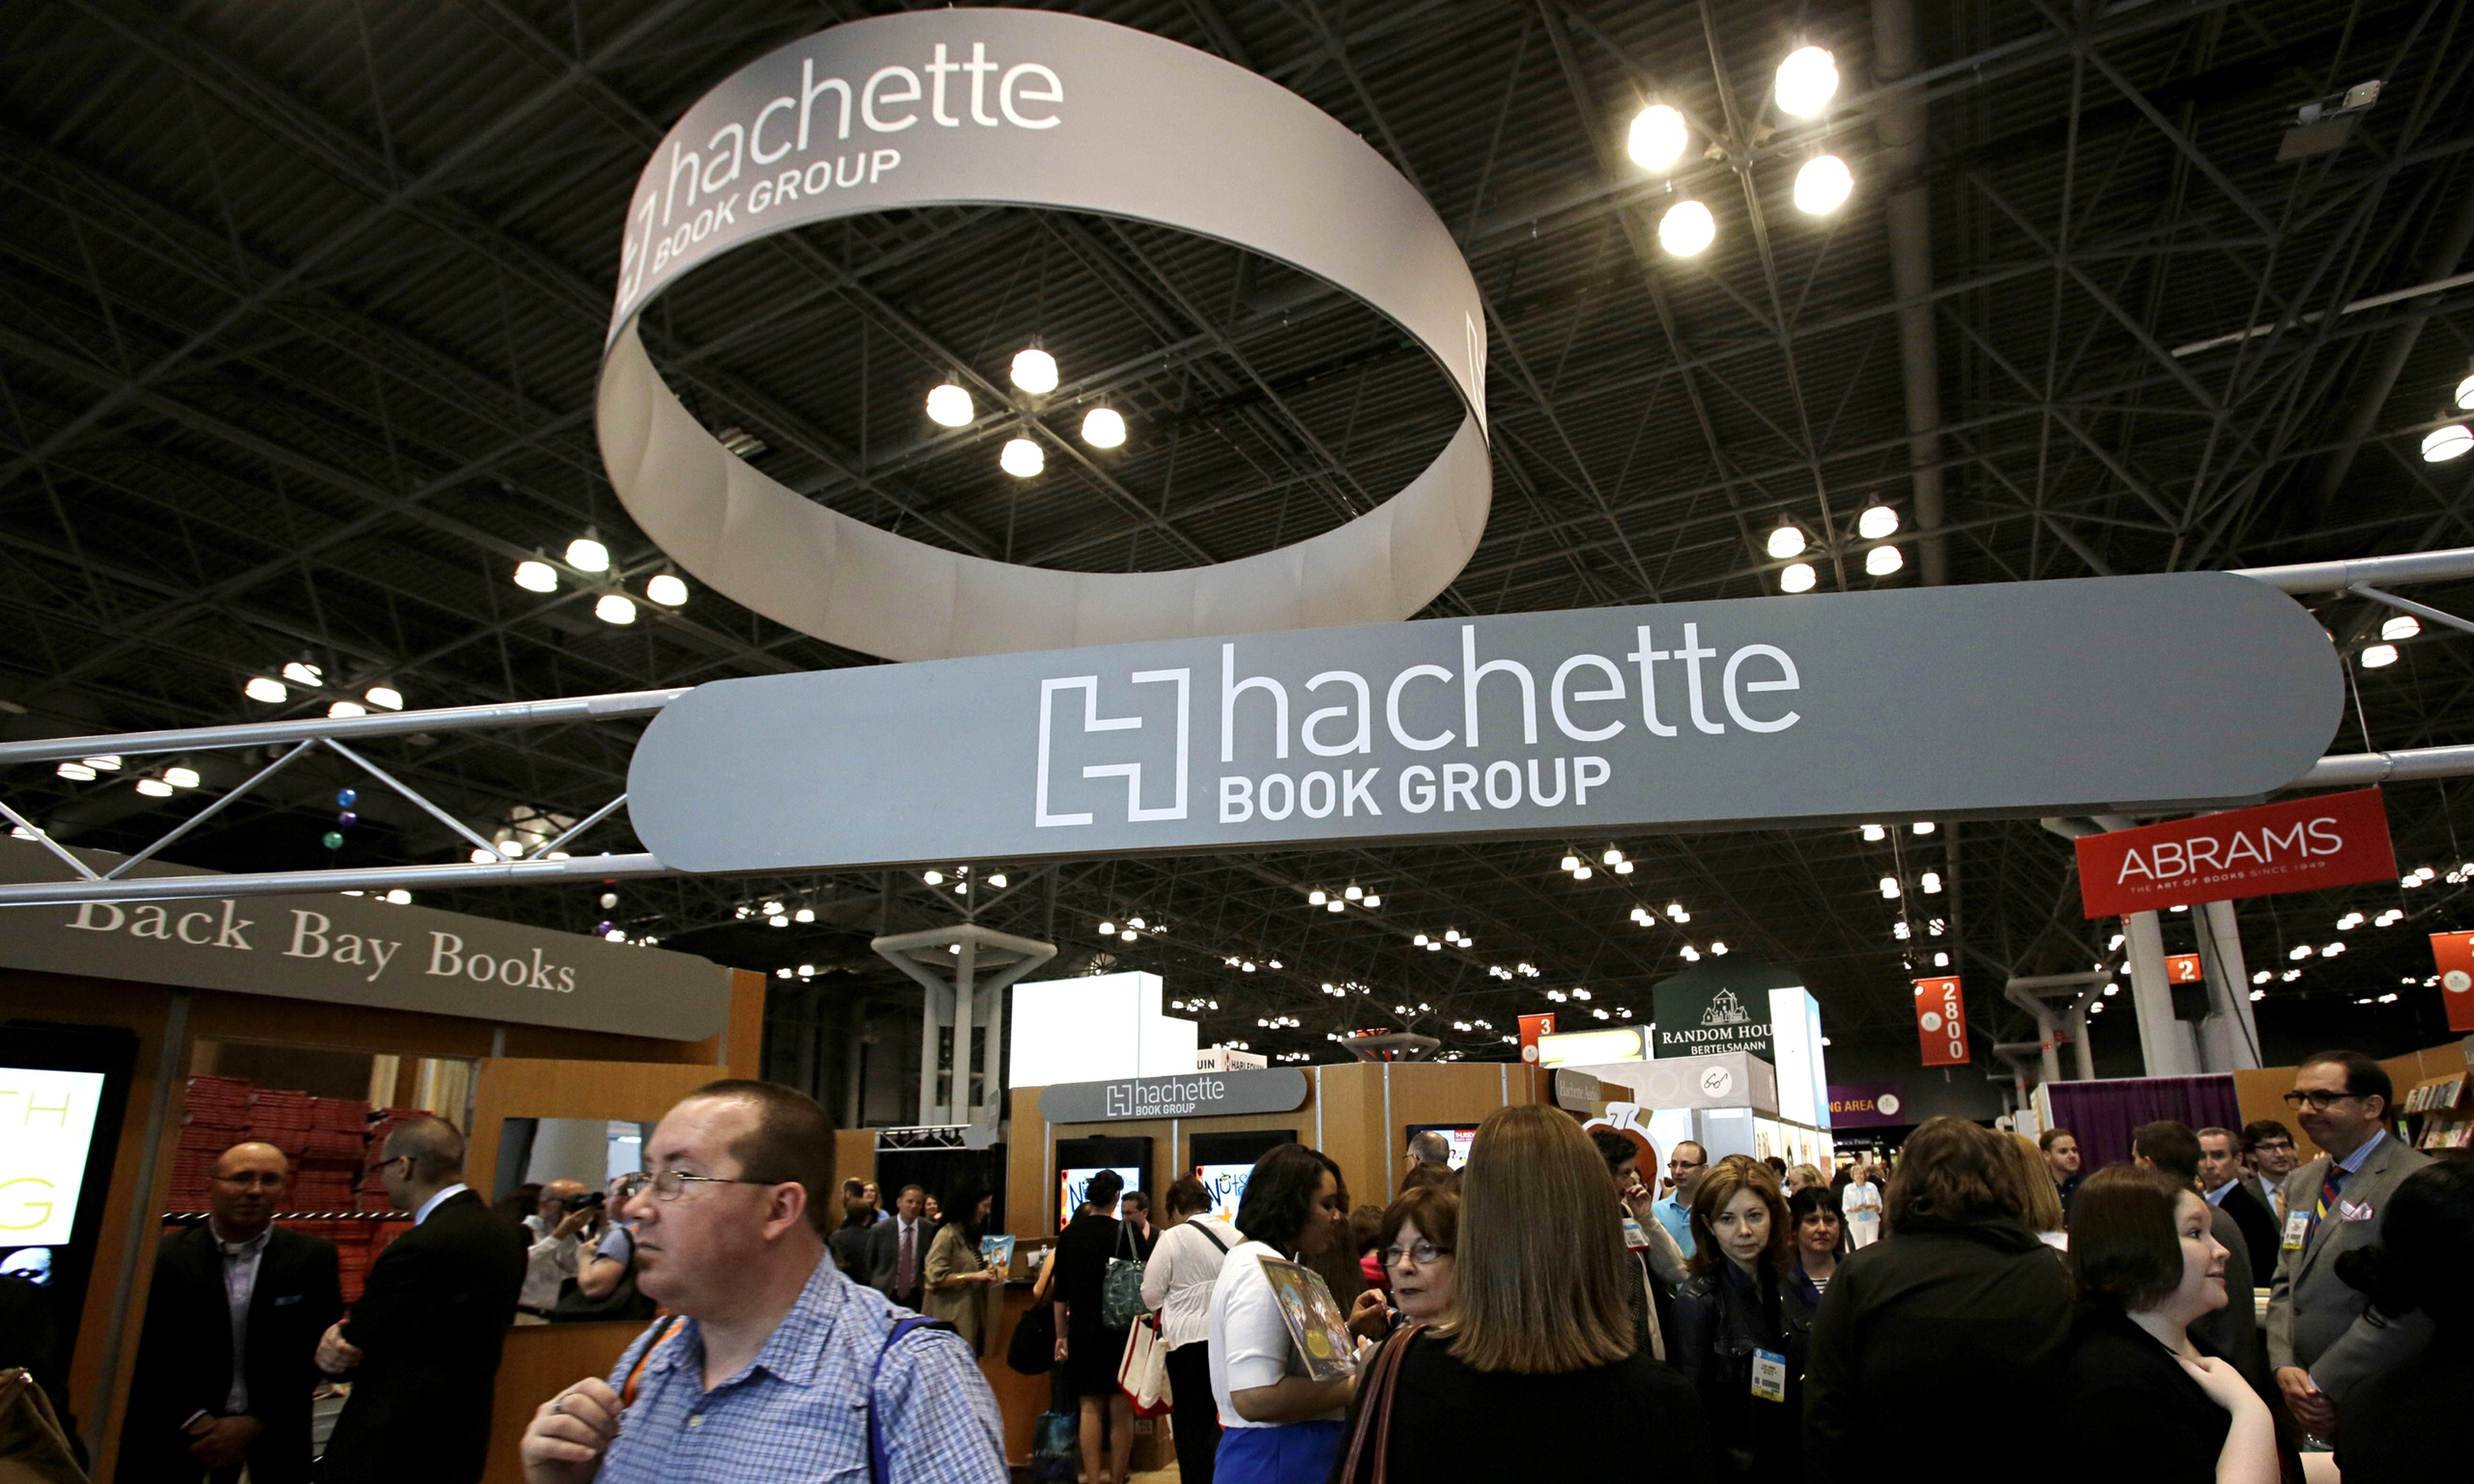 Hachette Book Group at BookExpo America